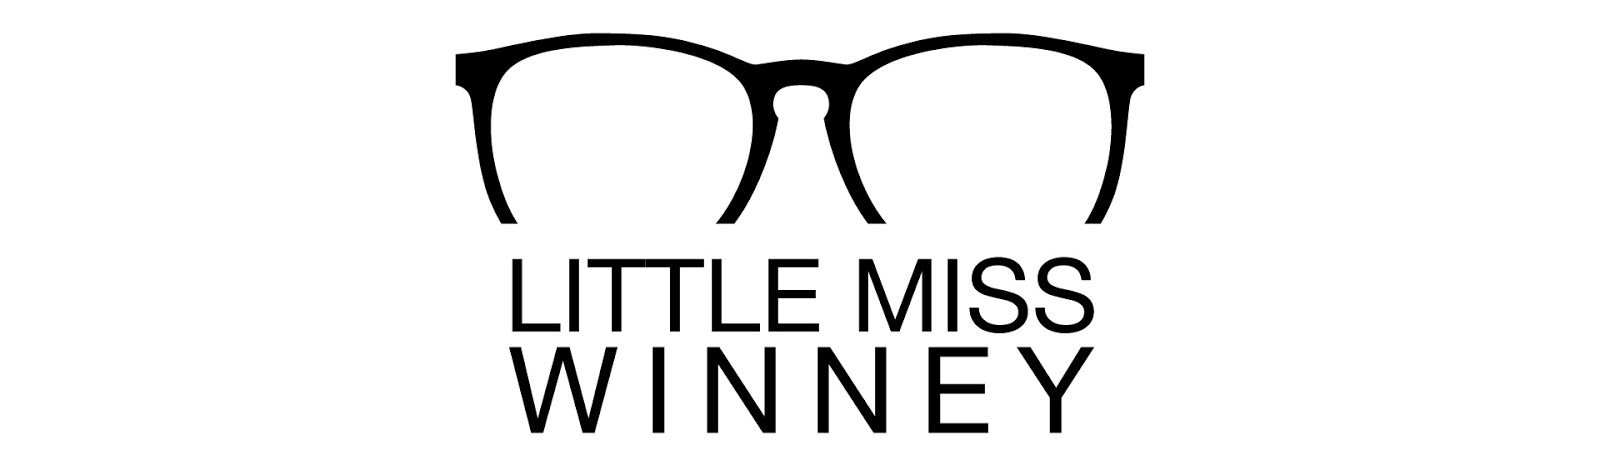 Little Miss Winney